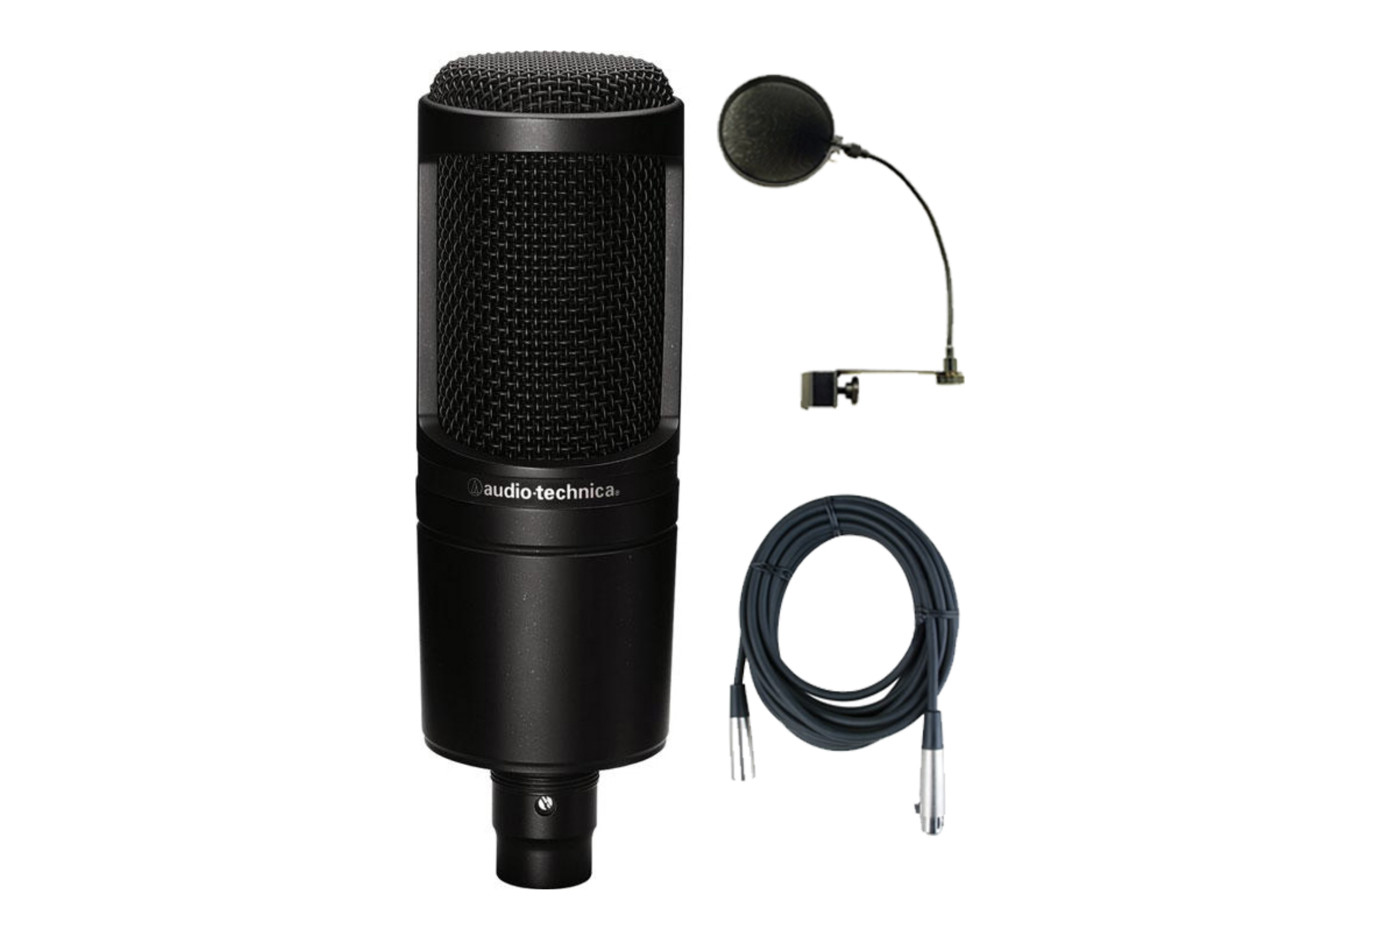 audio technica at2020 studio microphone bundle. Black Bedroom Furniture Sets. Home Design Ideas